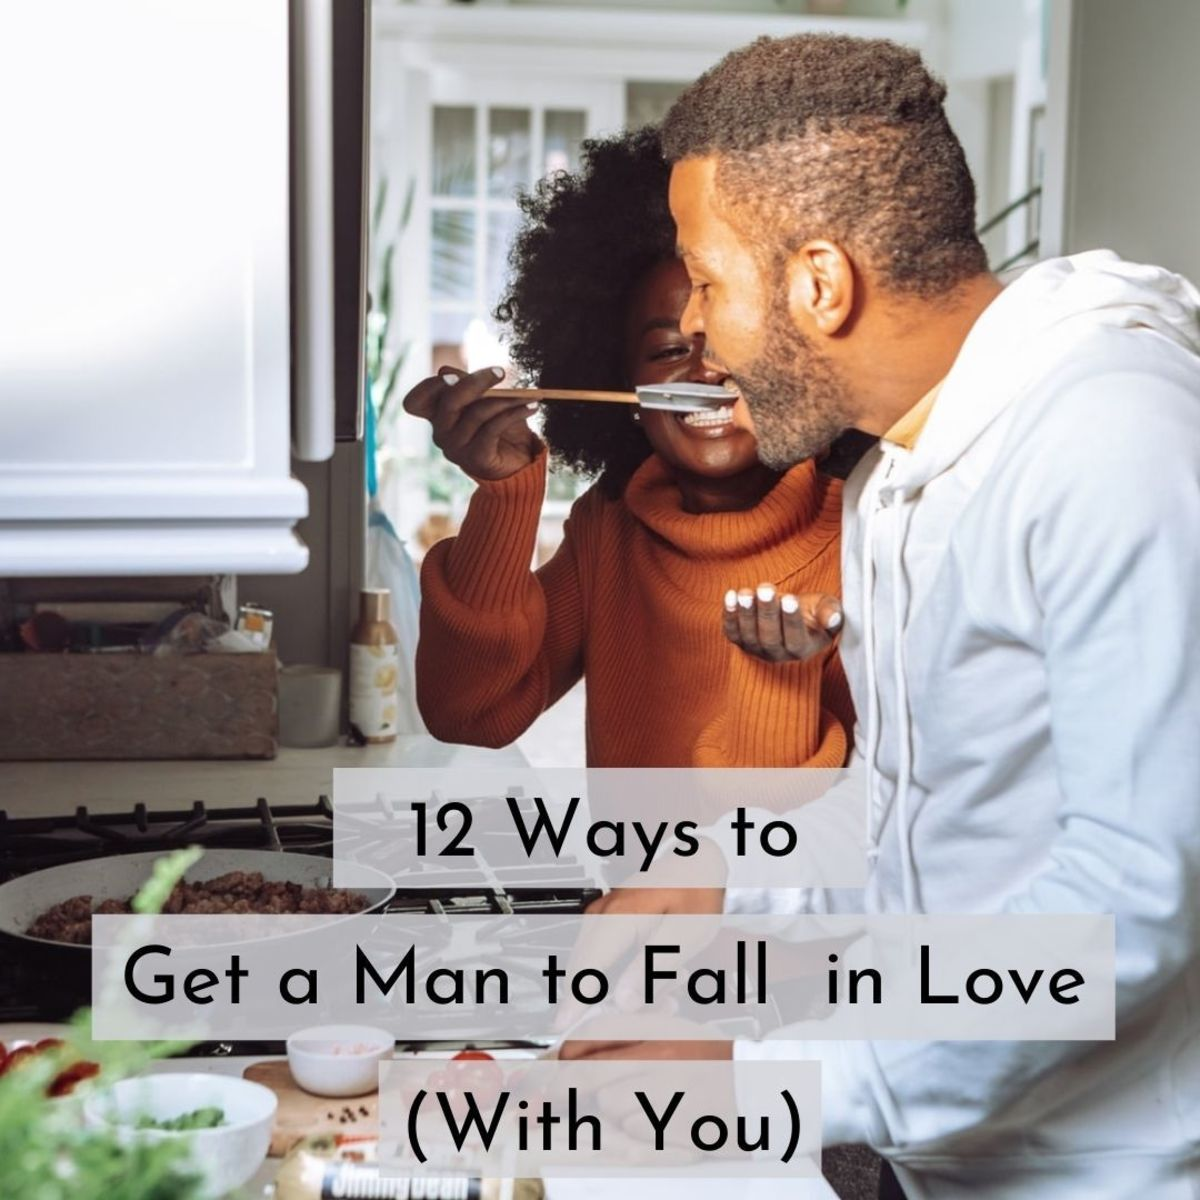 12 Ways to Make a Man Fall Deeply in Love With You